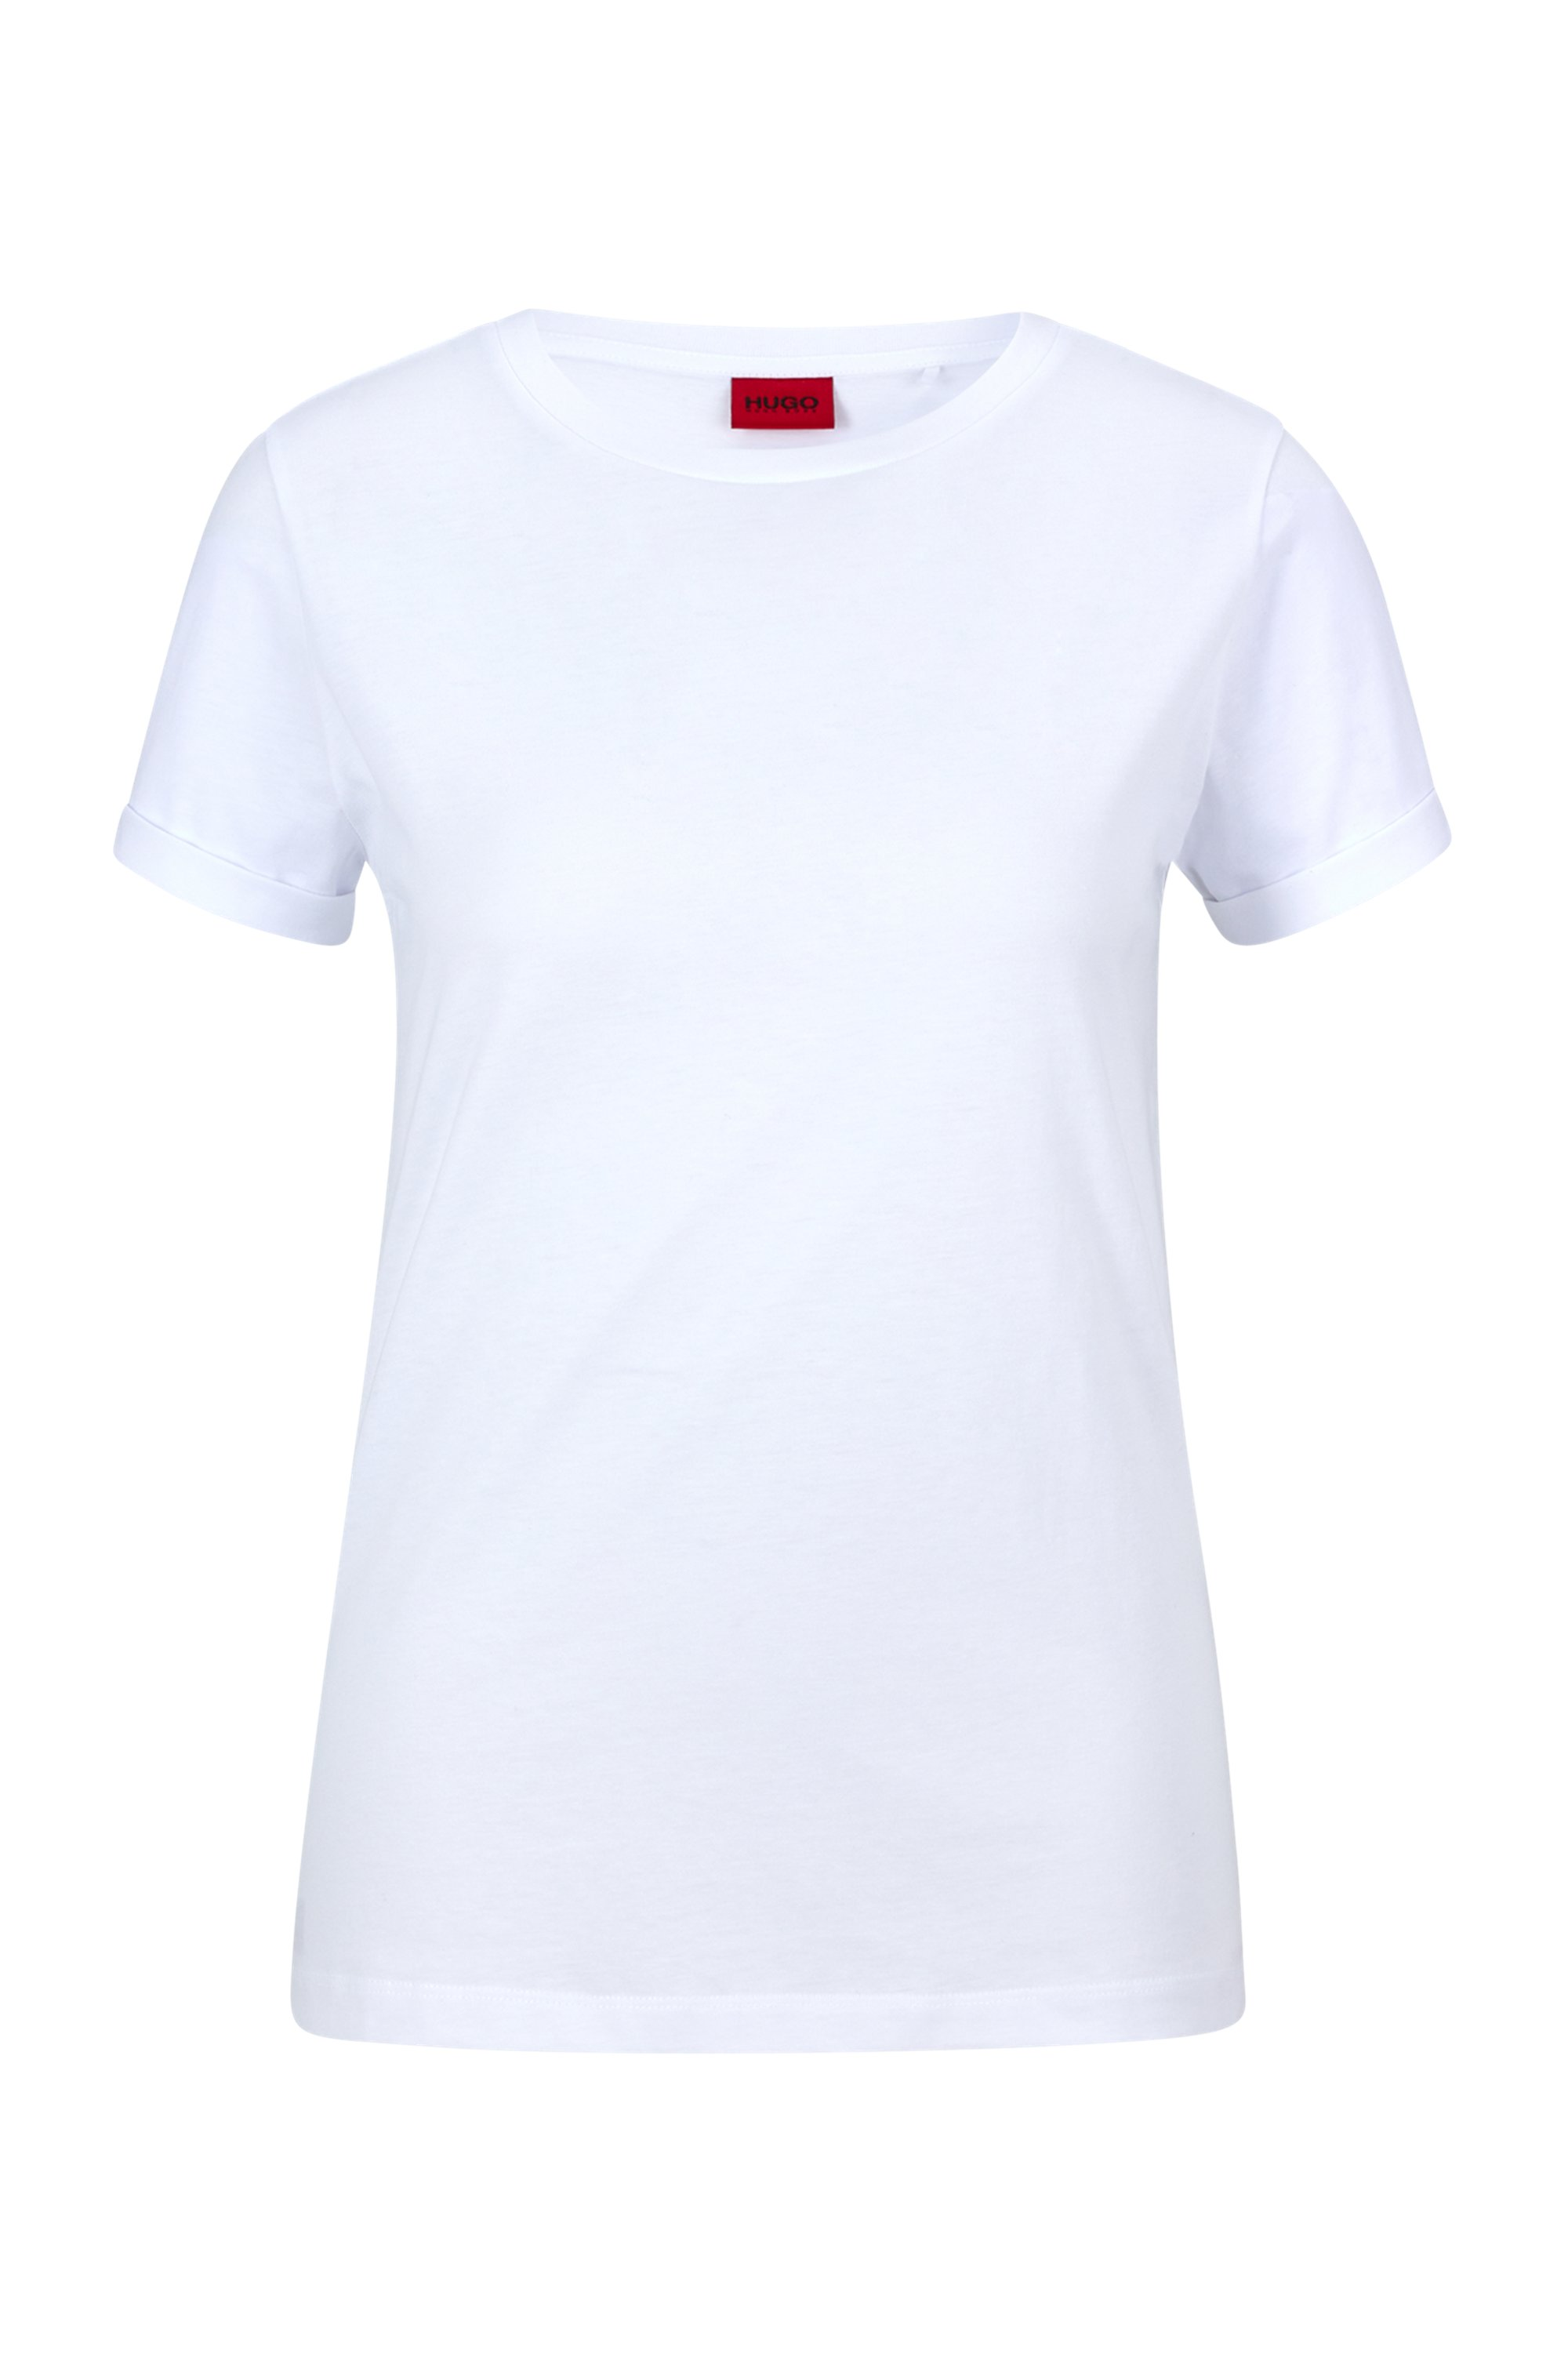 Cotton-jersey T-shirt with reversed-logo print, White